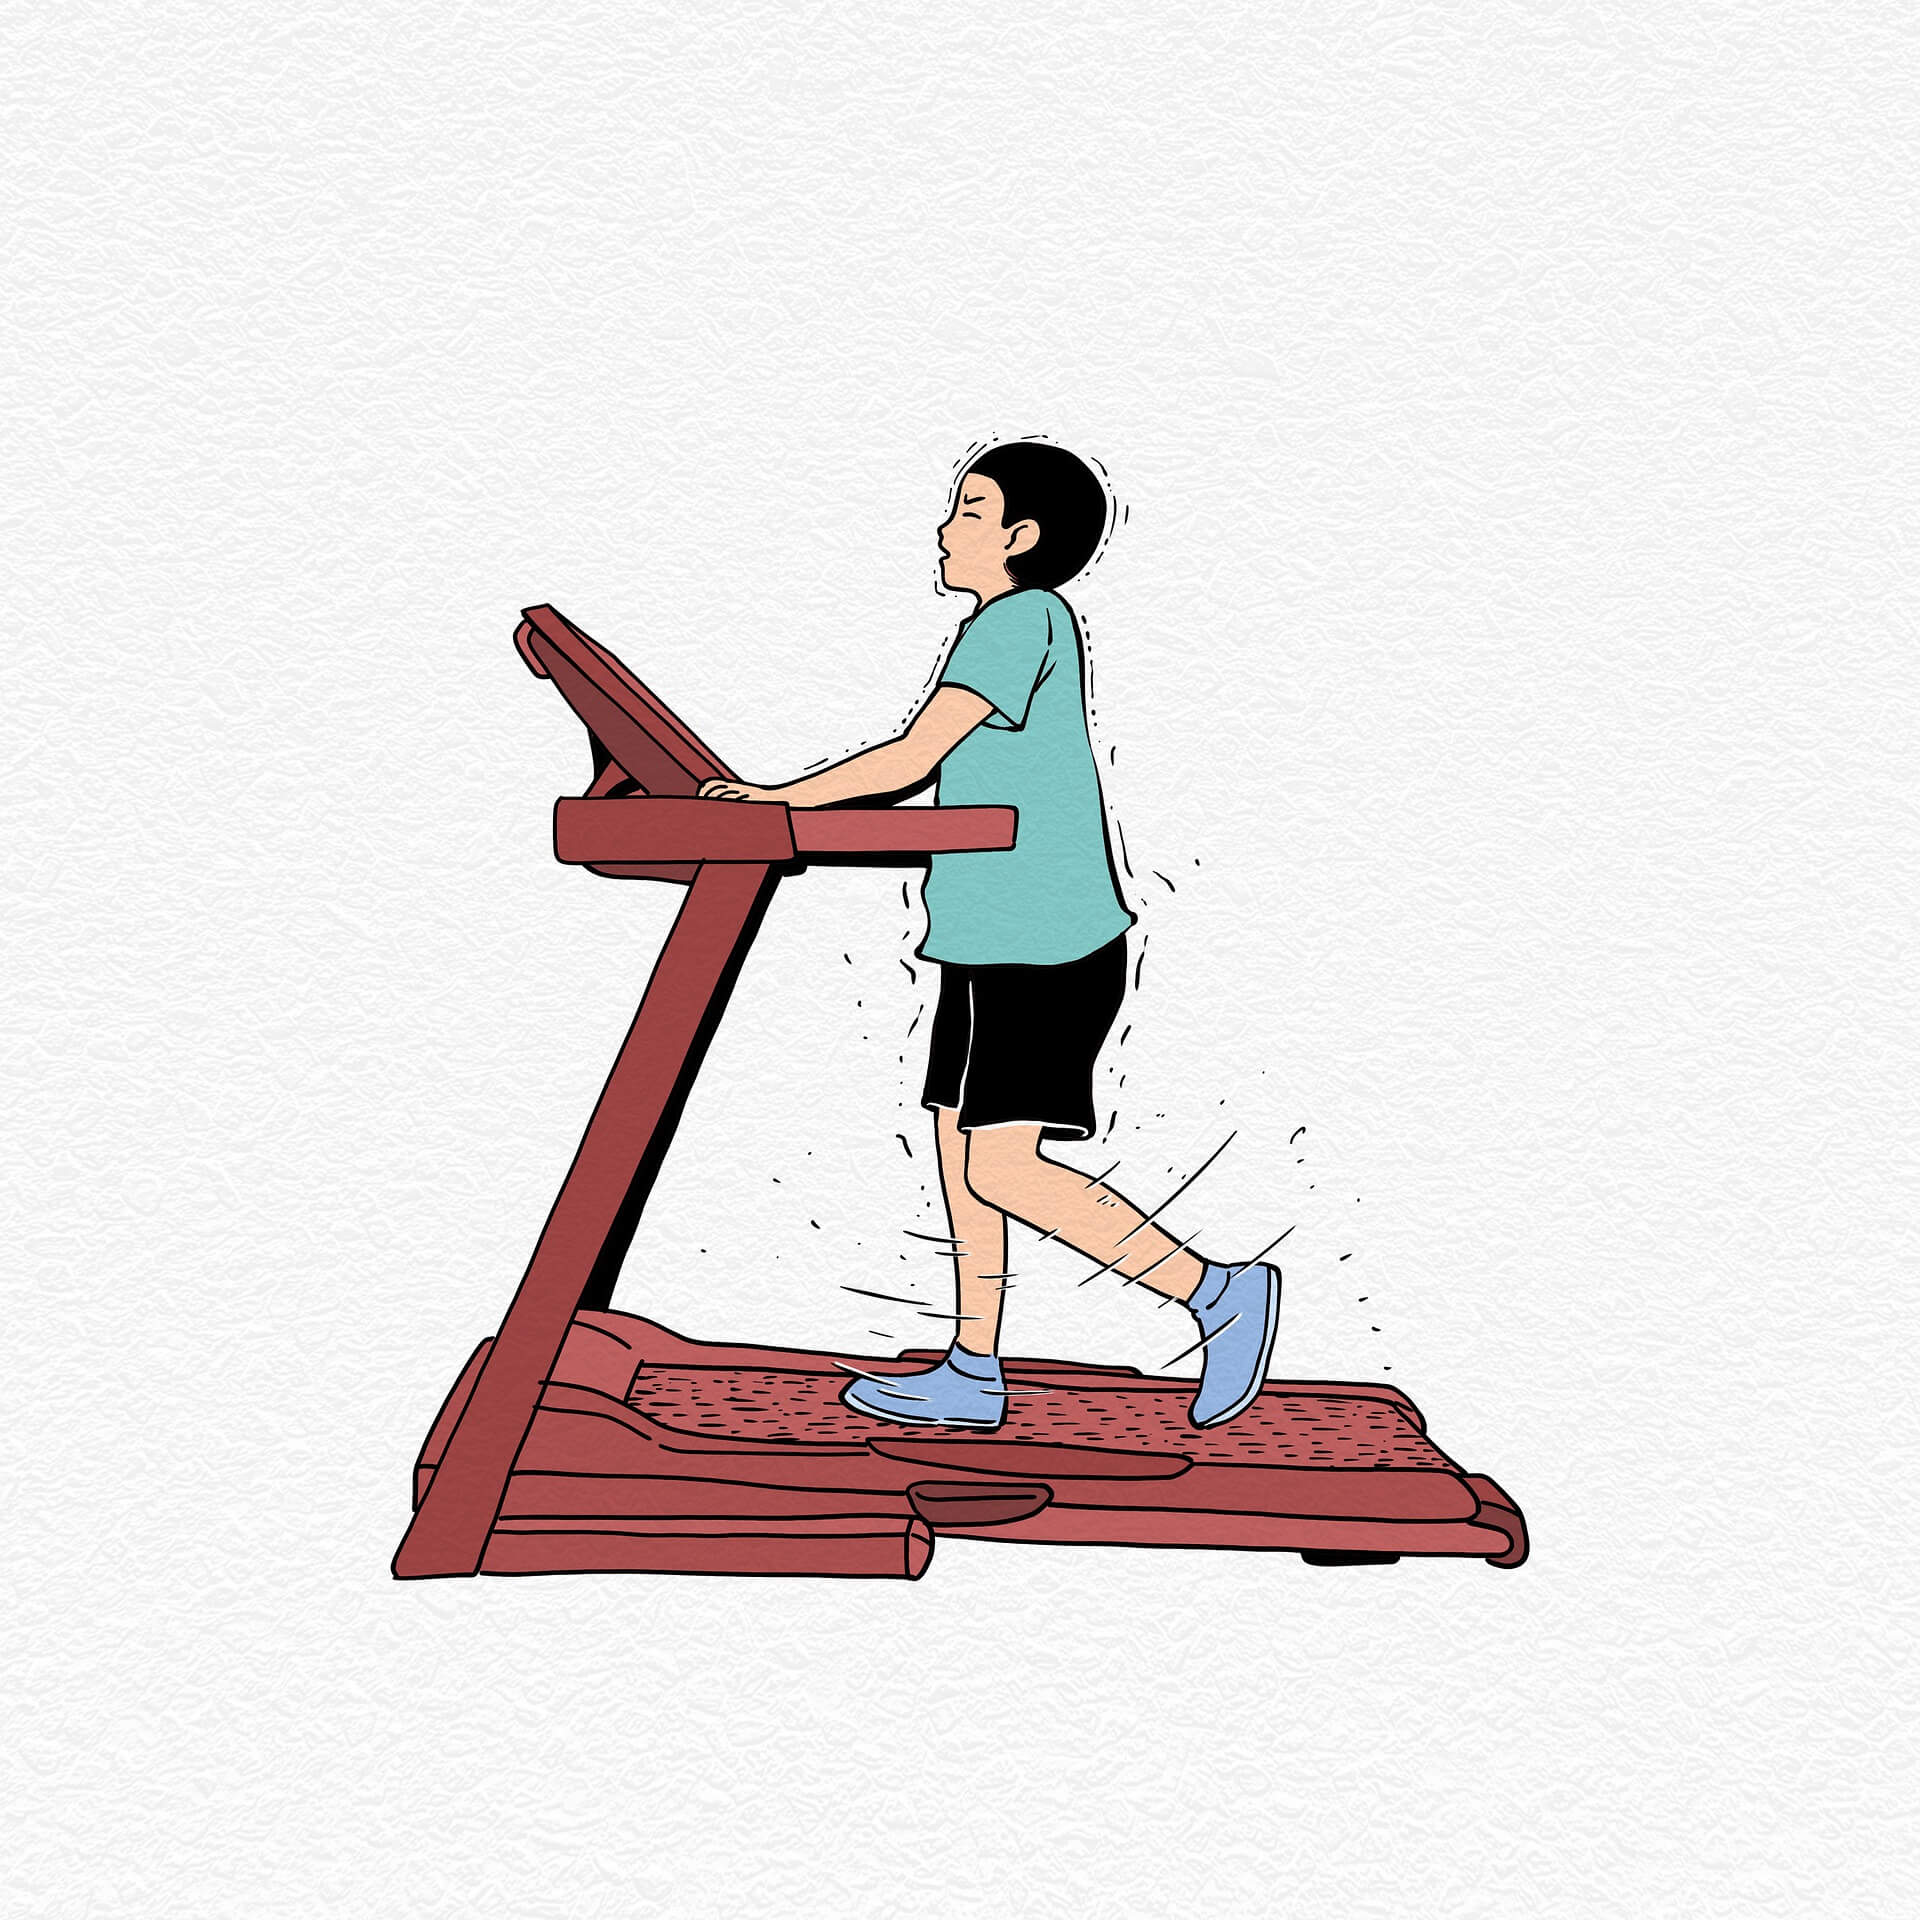 How do you absorb shocks from a treadmill